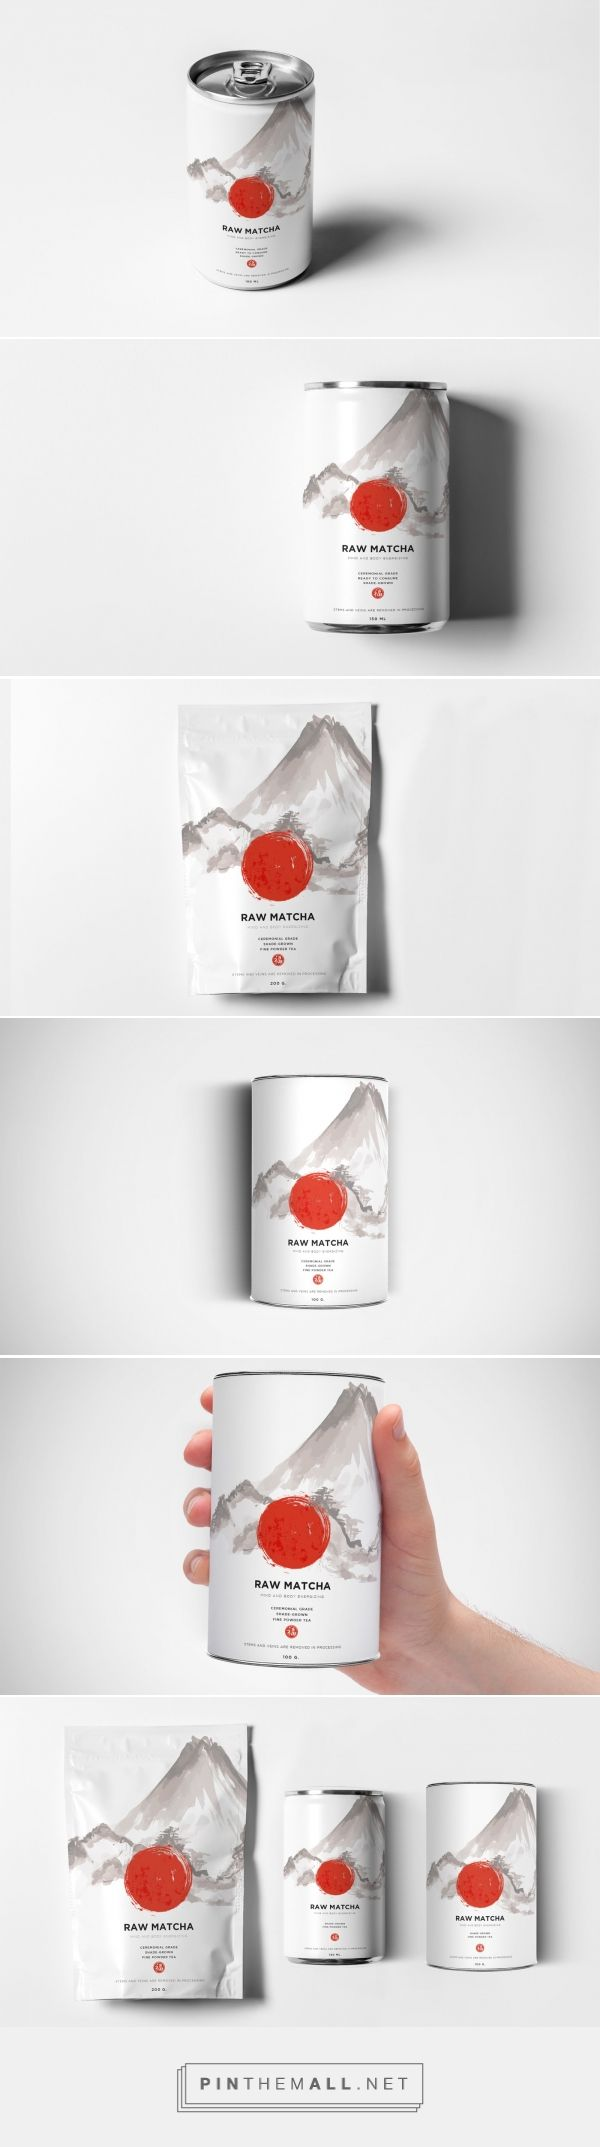 Raw Matcha (Concept) - Packaging of the World - Creative Package Design Gallery - http://www.packagingoftheworld.com/2016/10/raw-matcha-concept.html